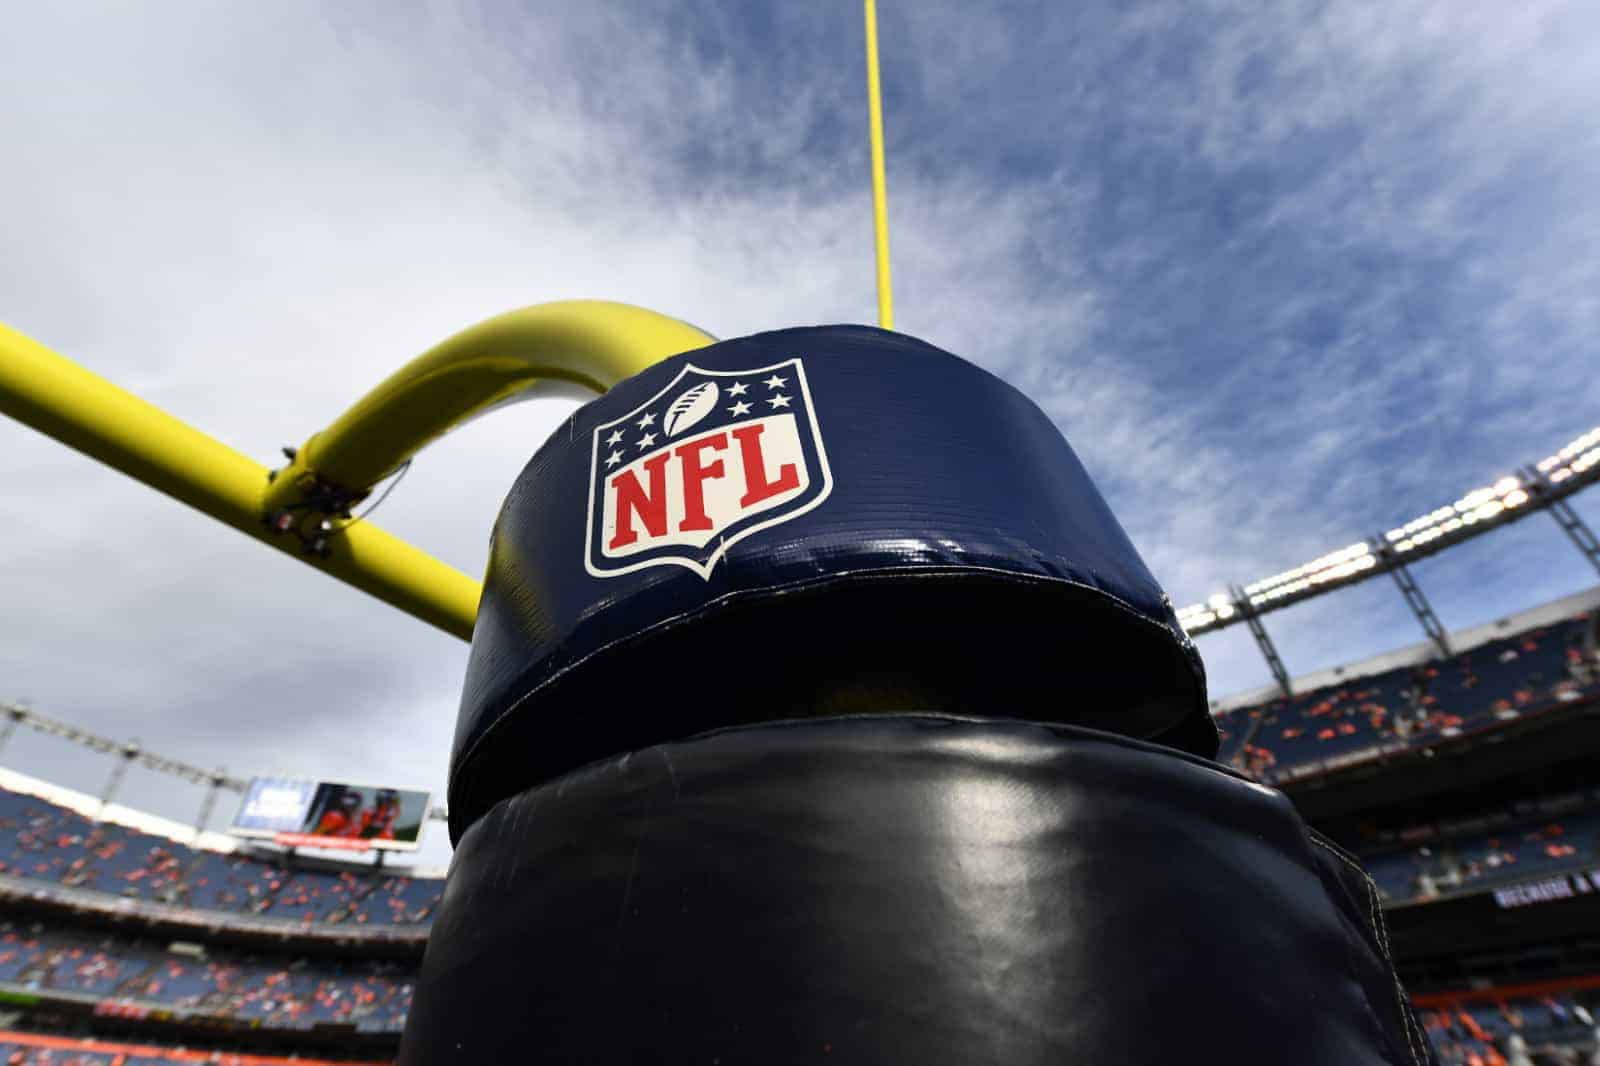 NFL logo on goalpost